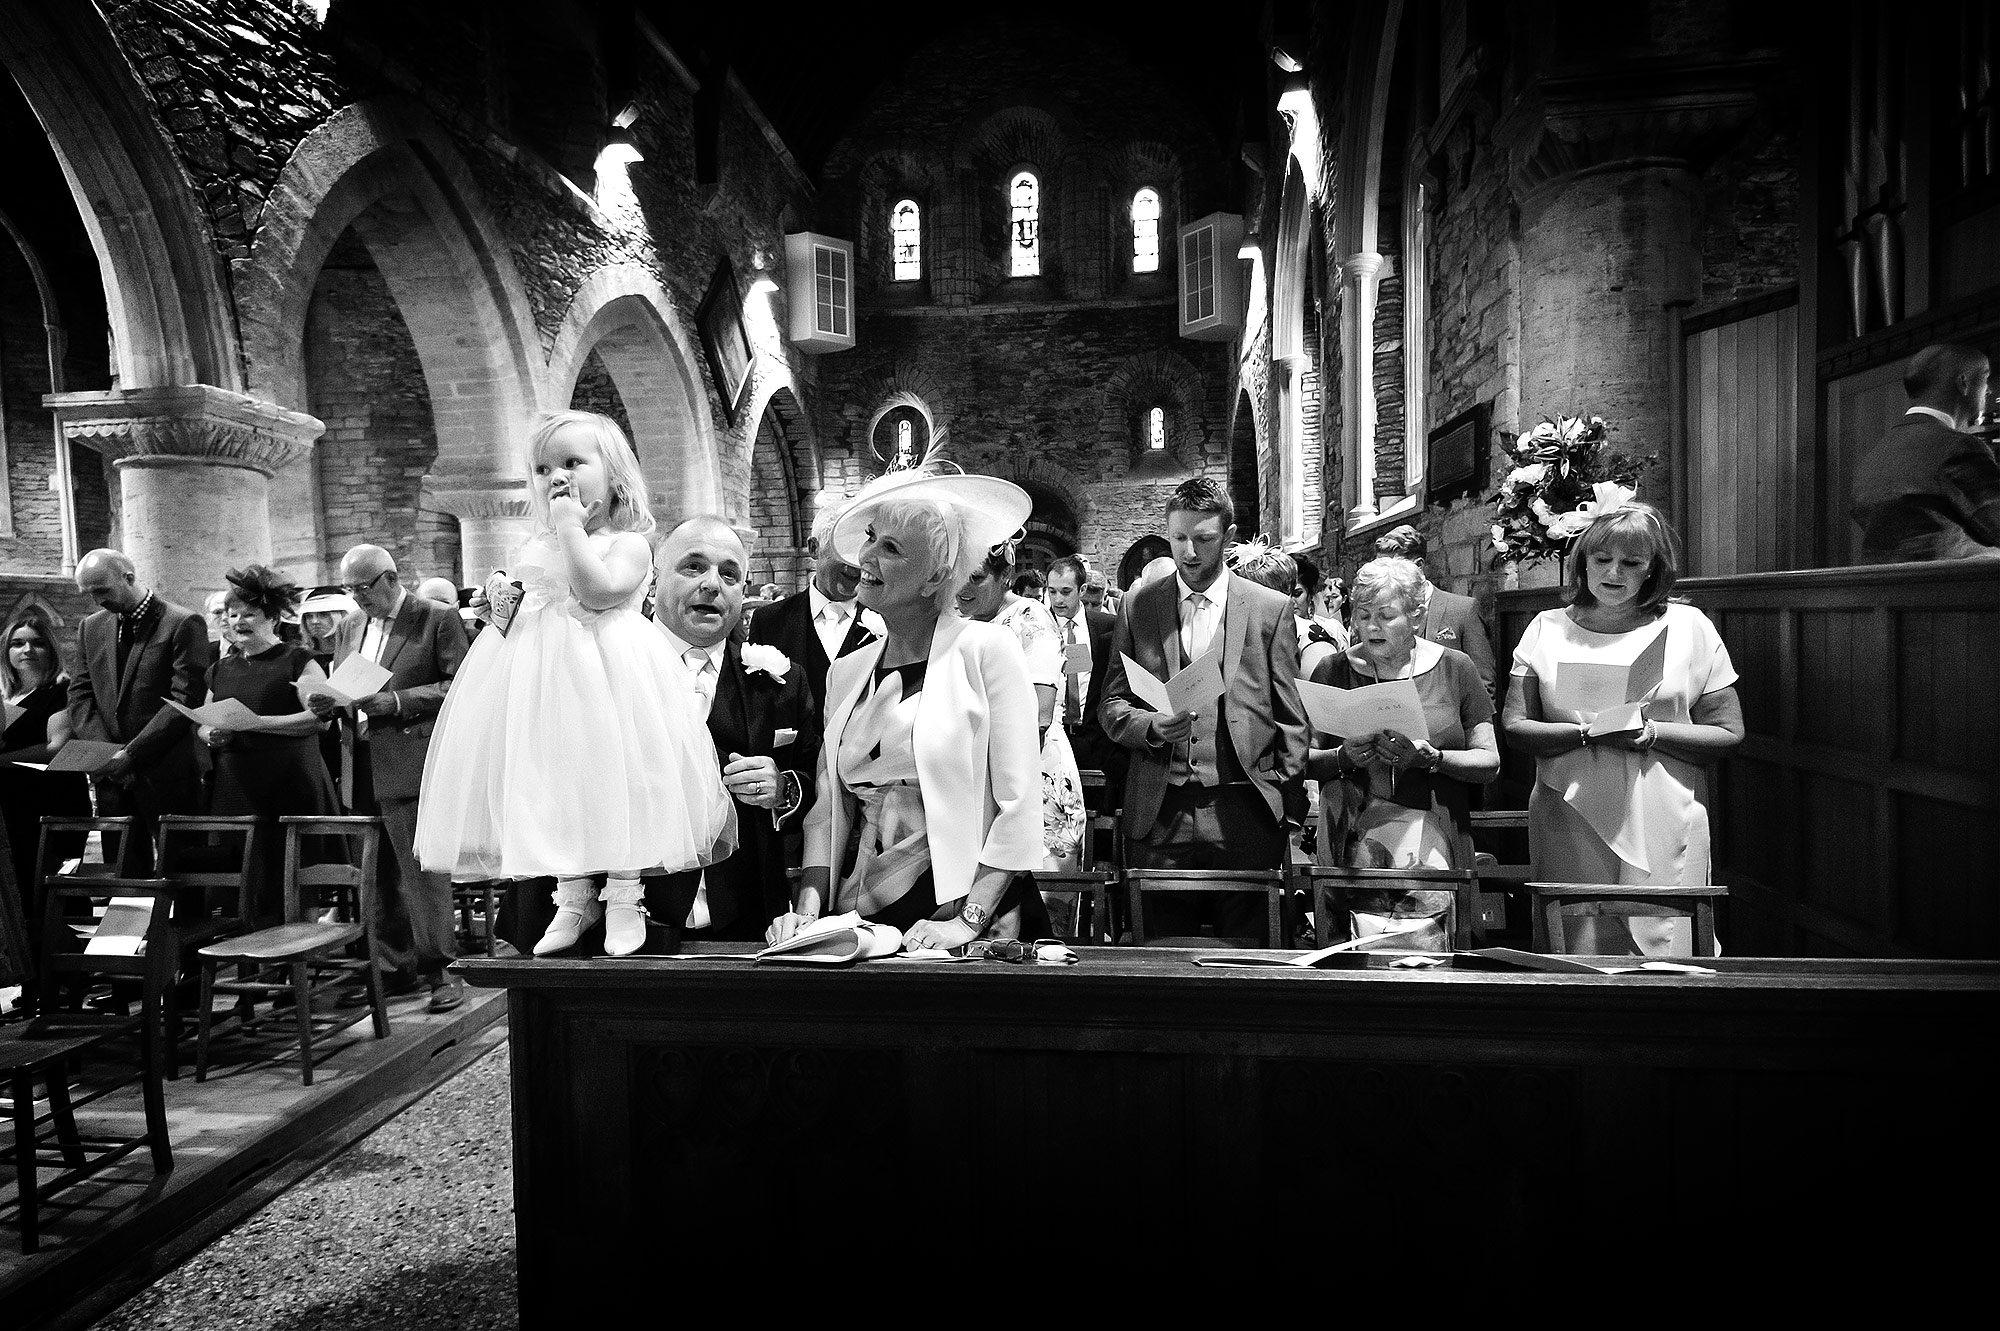 Flowergirl eating sweets during wedding ceremony at St Germans curch in Cornwall